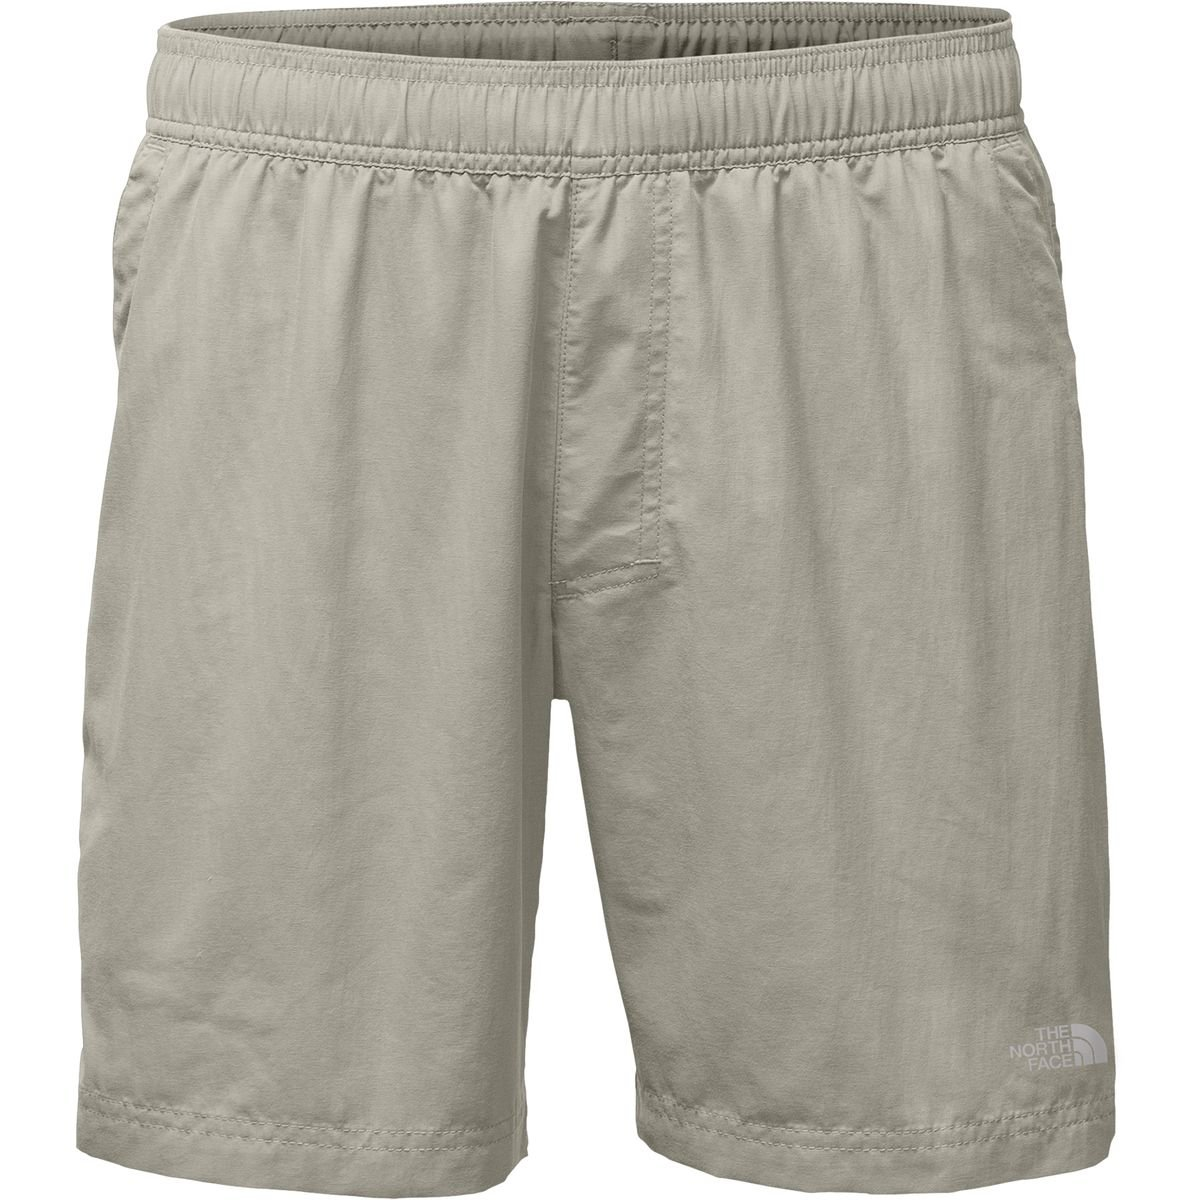 1649e4ece020e The North Face Men's Class V Pull-On Trunk at Amazon Men's Clothing store: